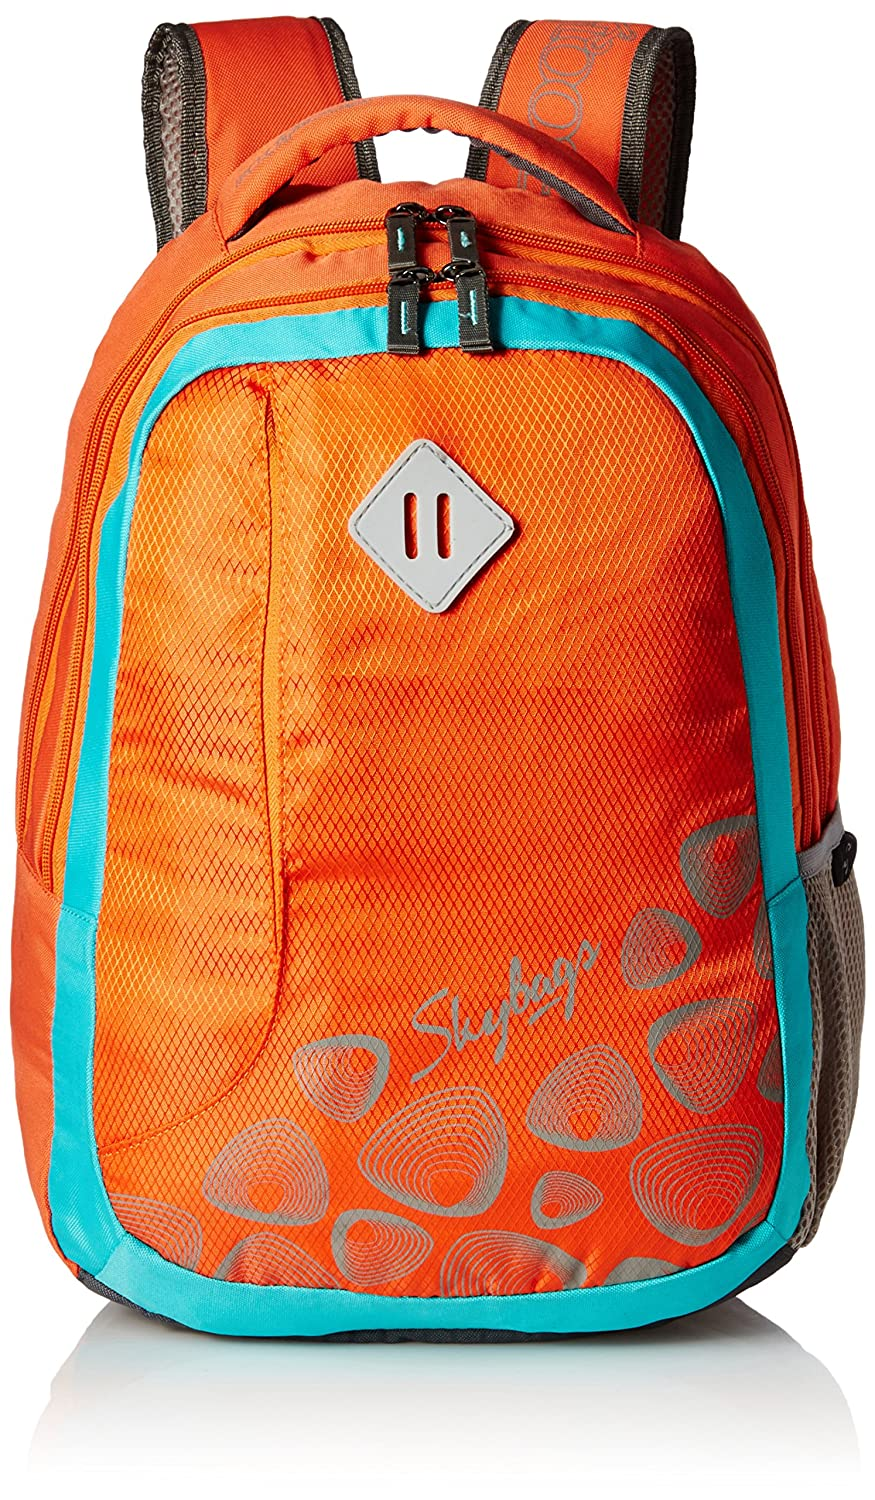 Skybags Leo 26 Ltrs Orange Casual Backpack (BPLEO2ONG)